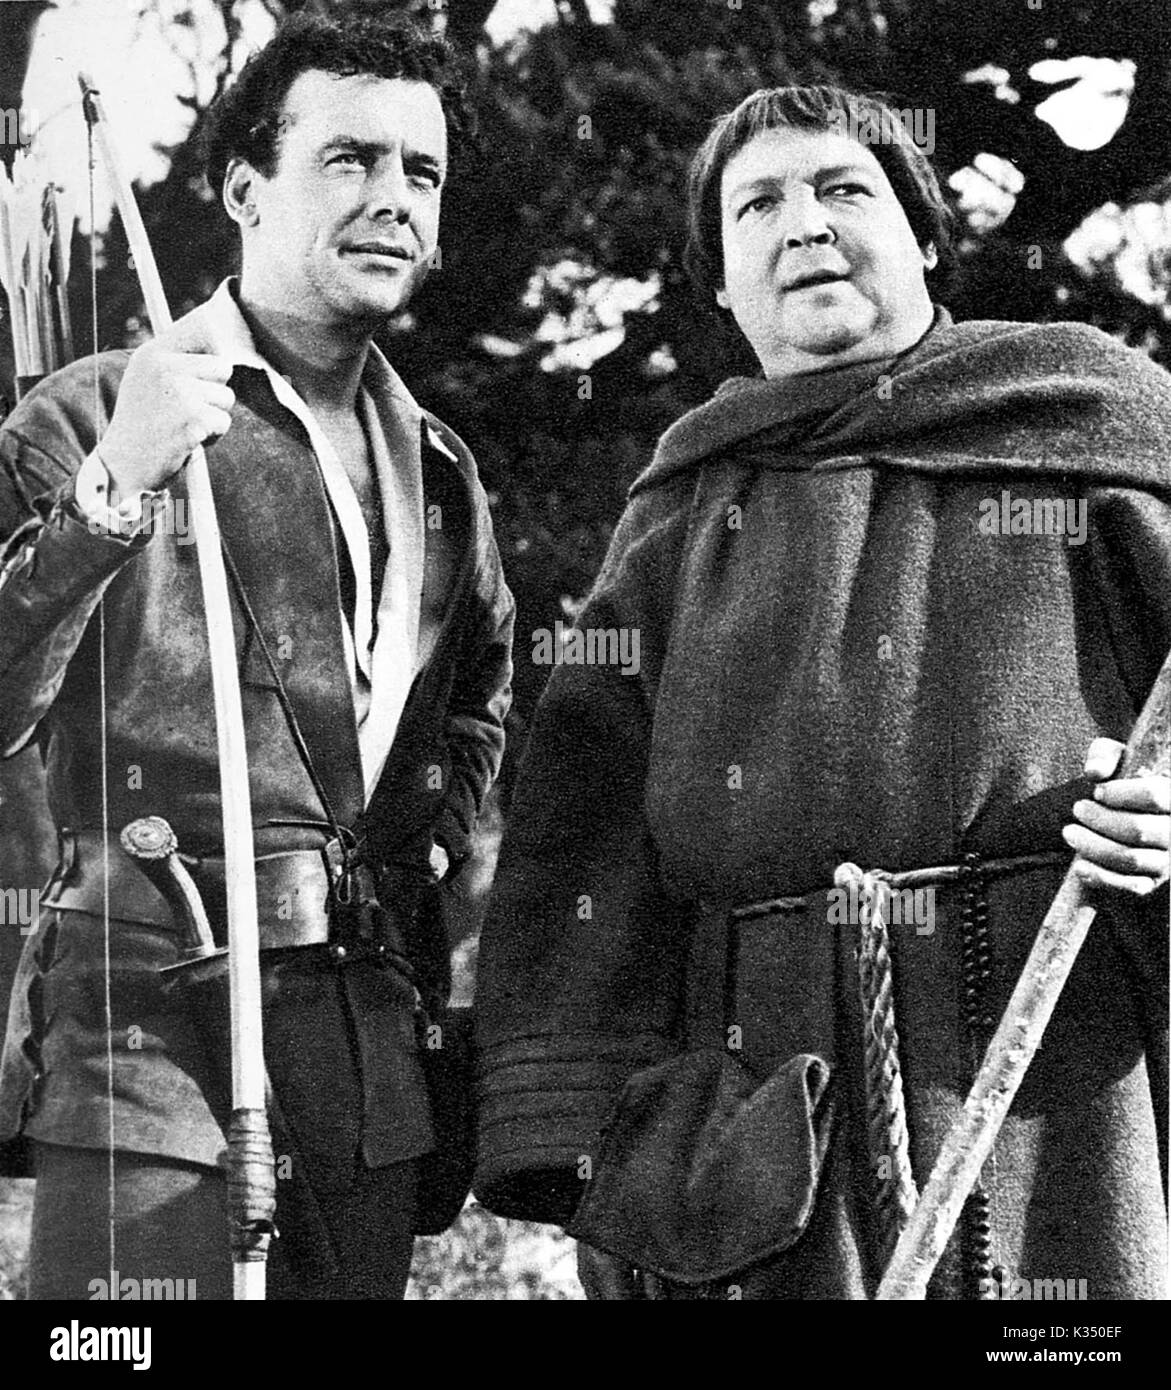 THE ADVENTURES OF ROBIN HOOD RICHARD GREENE as Robin Hood, ALEXANDER GUAGE as Friar Tuck THE ADVENTURES OF ROBIN - Stock Image